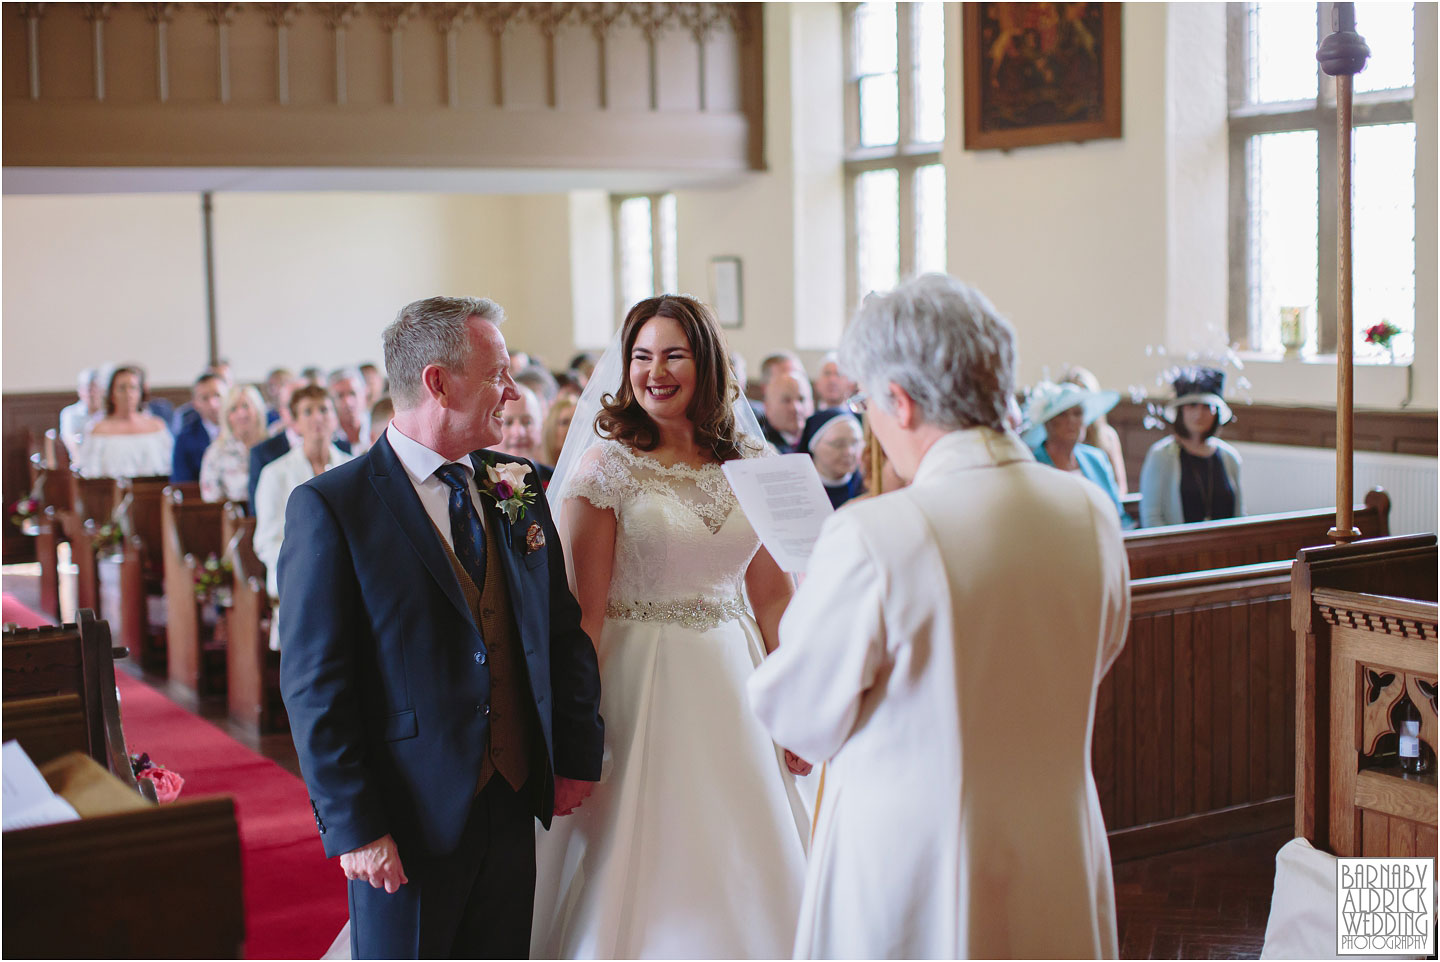 Summer wedding photography at the Inn at Whitewell; Clitheroe Wedding Photogr apher Lancashire; Lancashire Wedding photography; Barnaby Aldrick Wedding Photography